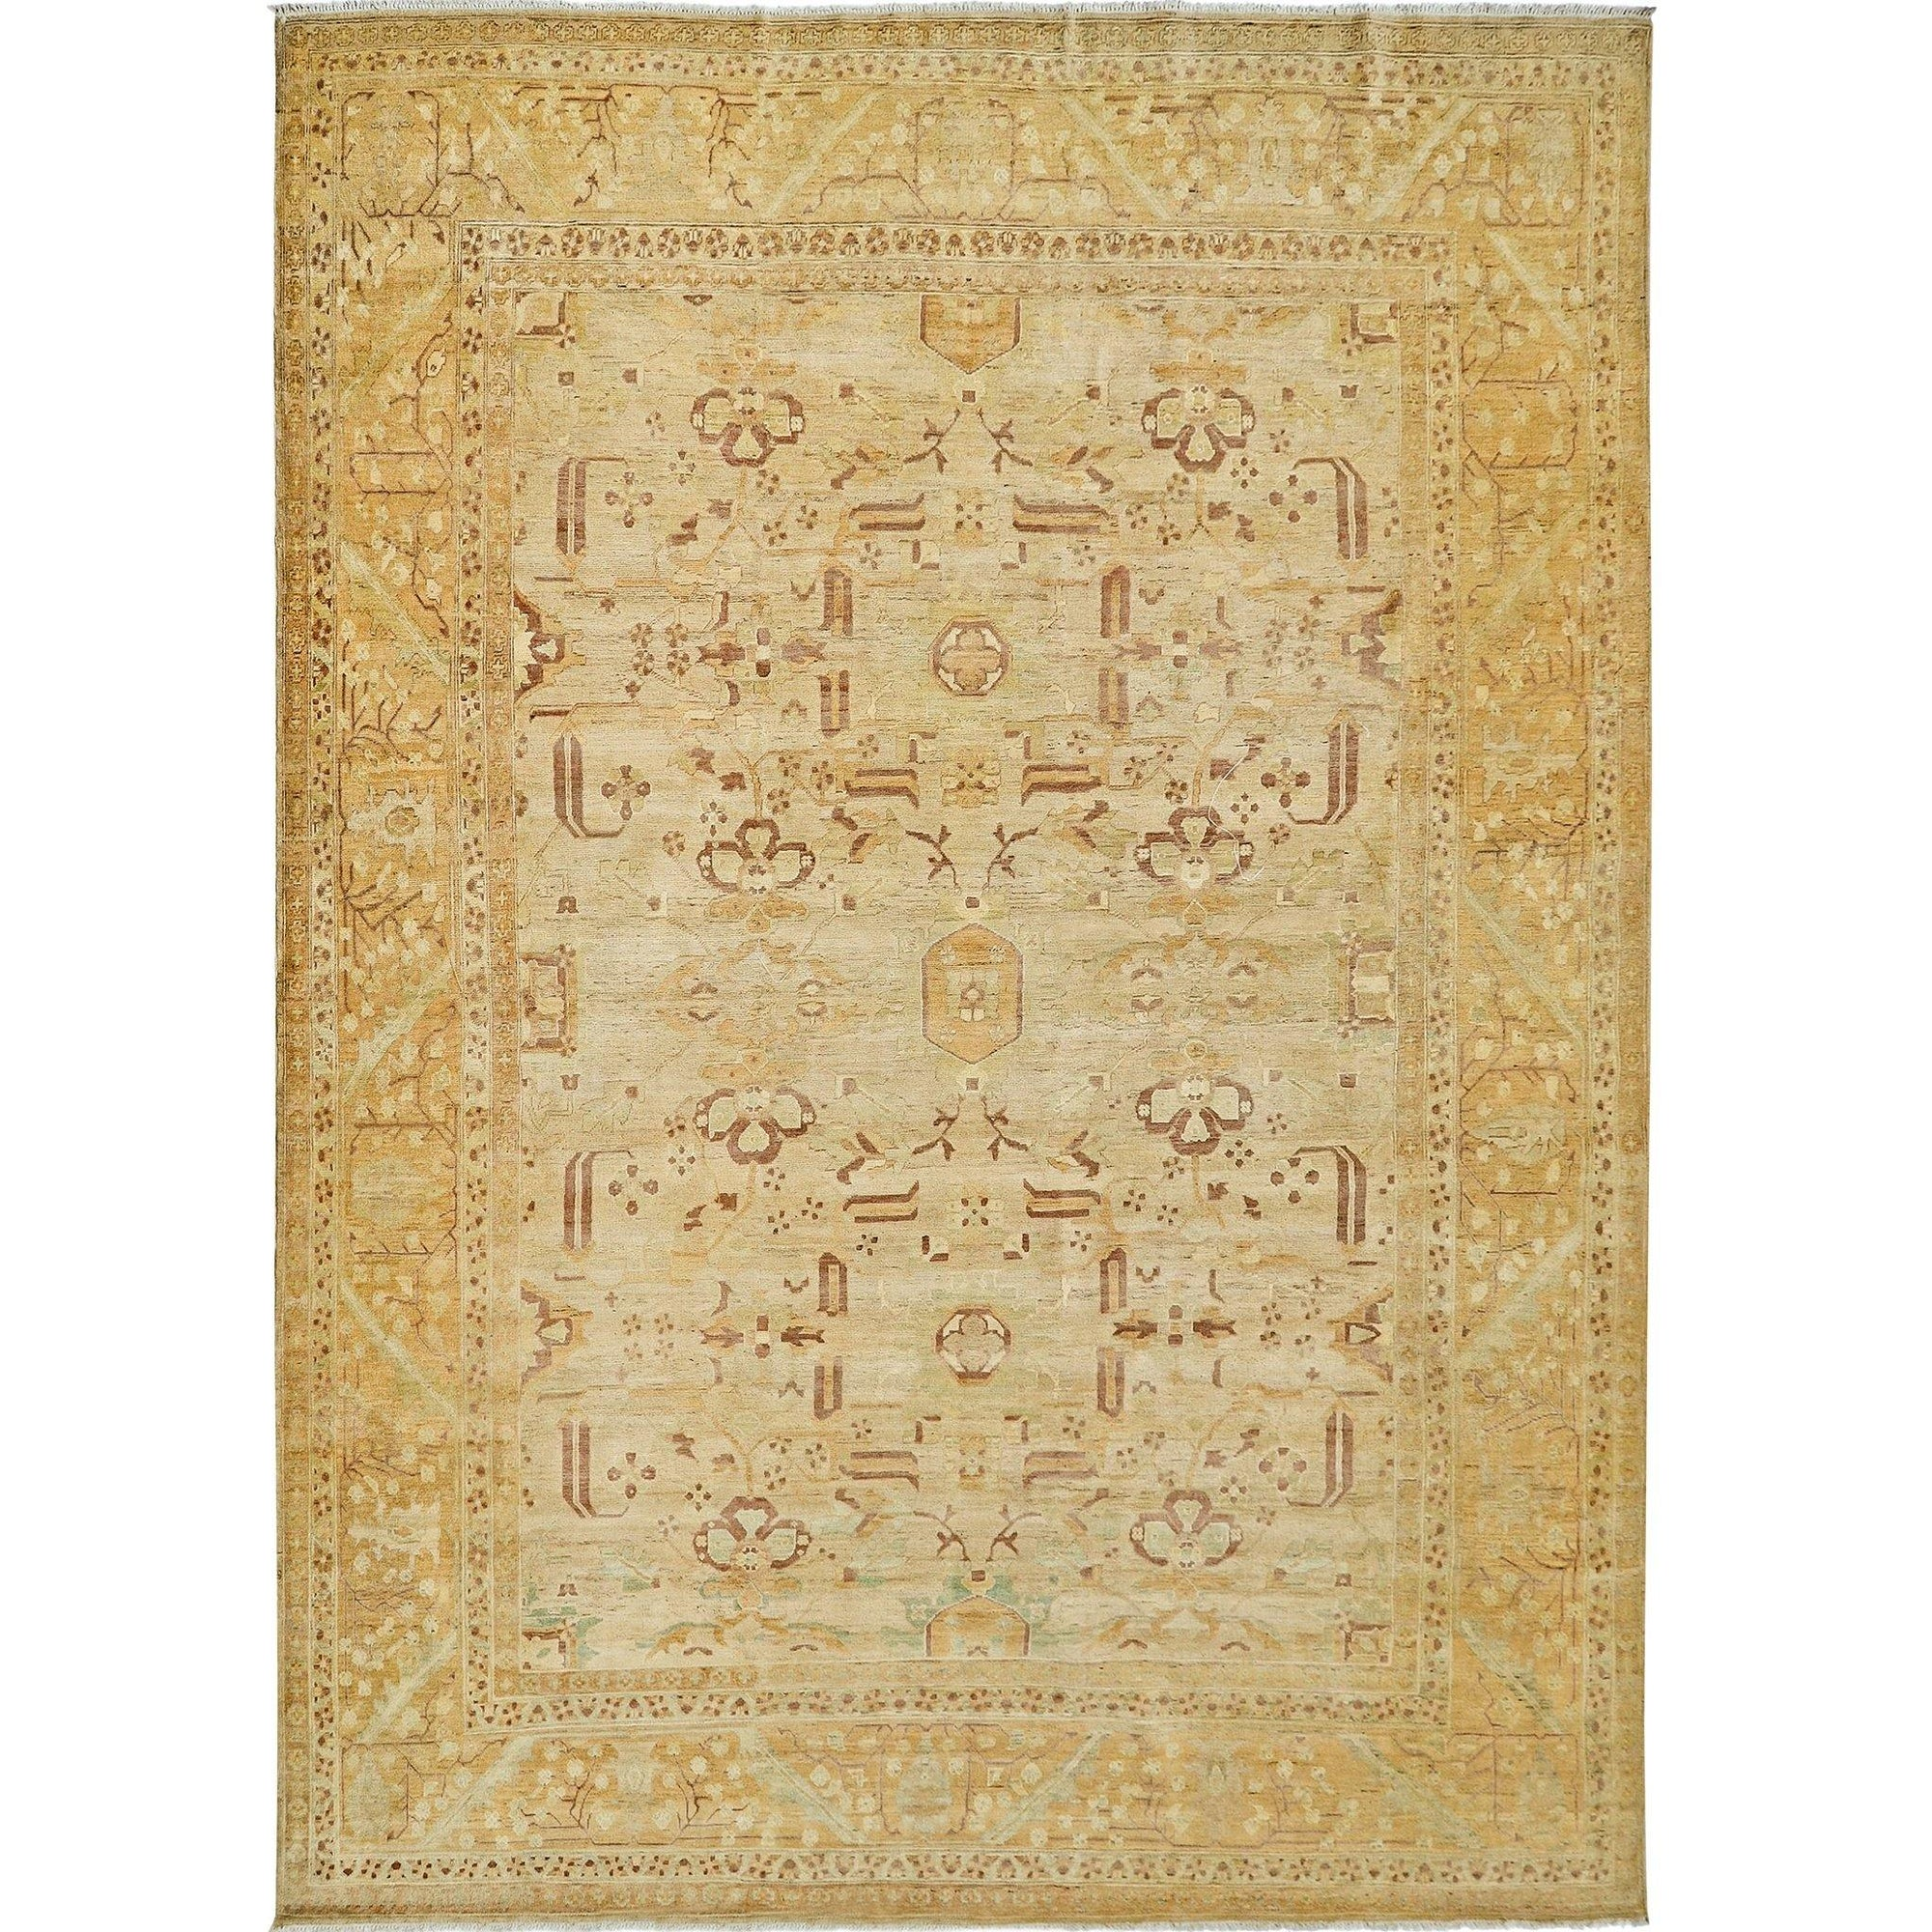 Fine Modern Hand-knotted Hand Spun Wool Rug 296cm x 384cm Persian-Rug | House-of-Haghi | NewMarket | Auckland | NZ | Handmade Persian Rugs | Hand Knotted Persian Rugs